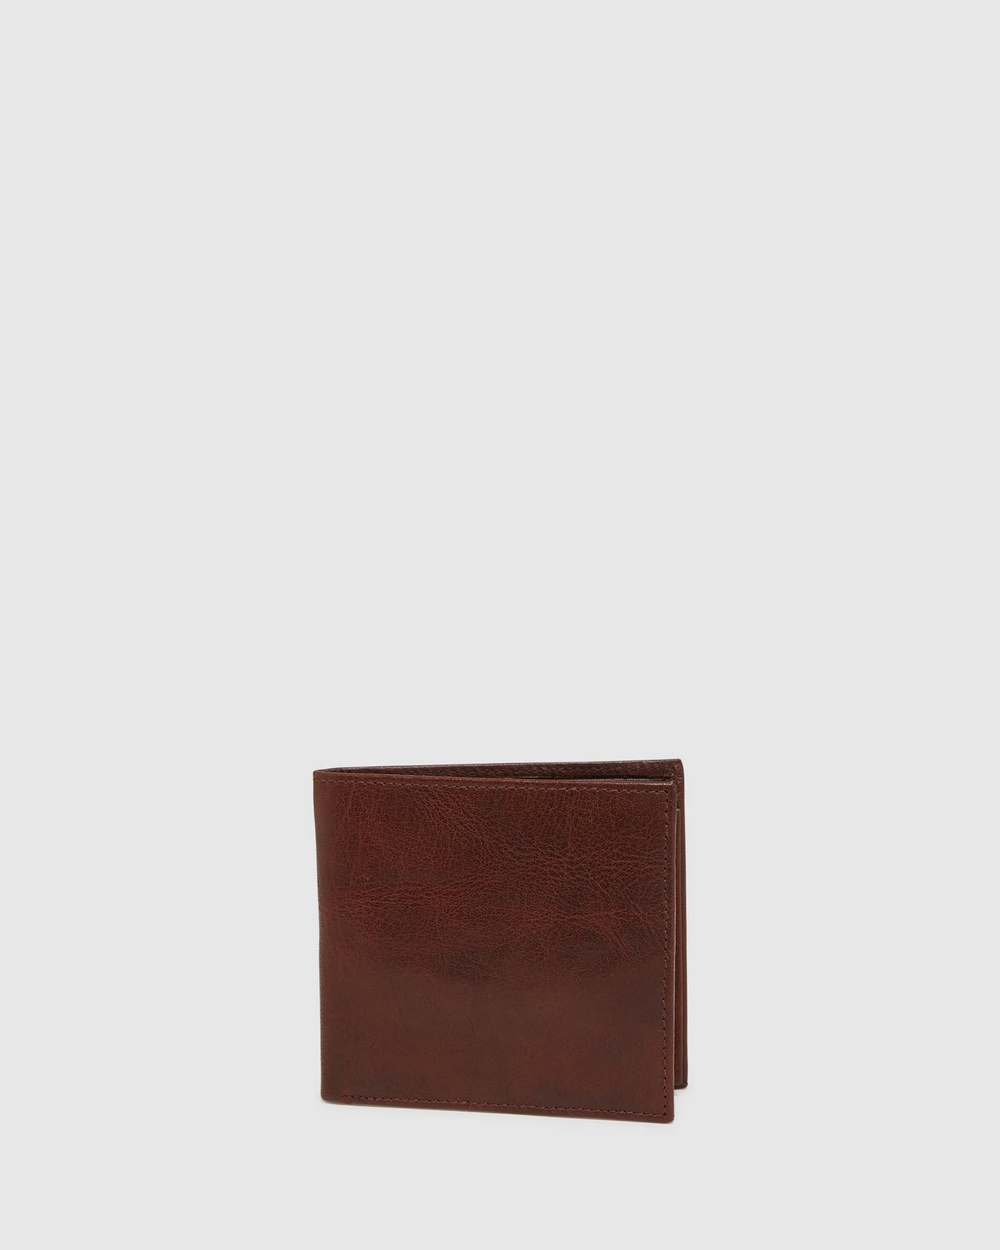 Oxford Lyle Leather Wallet Wallets Brown